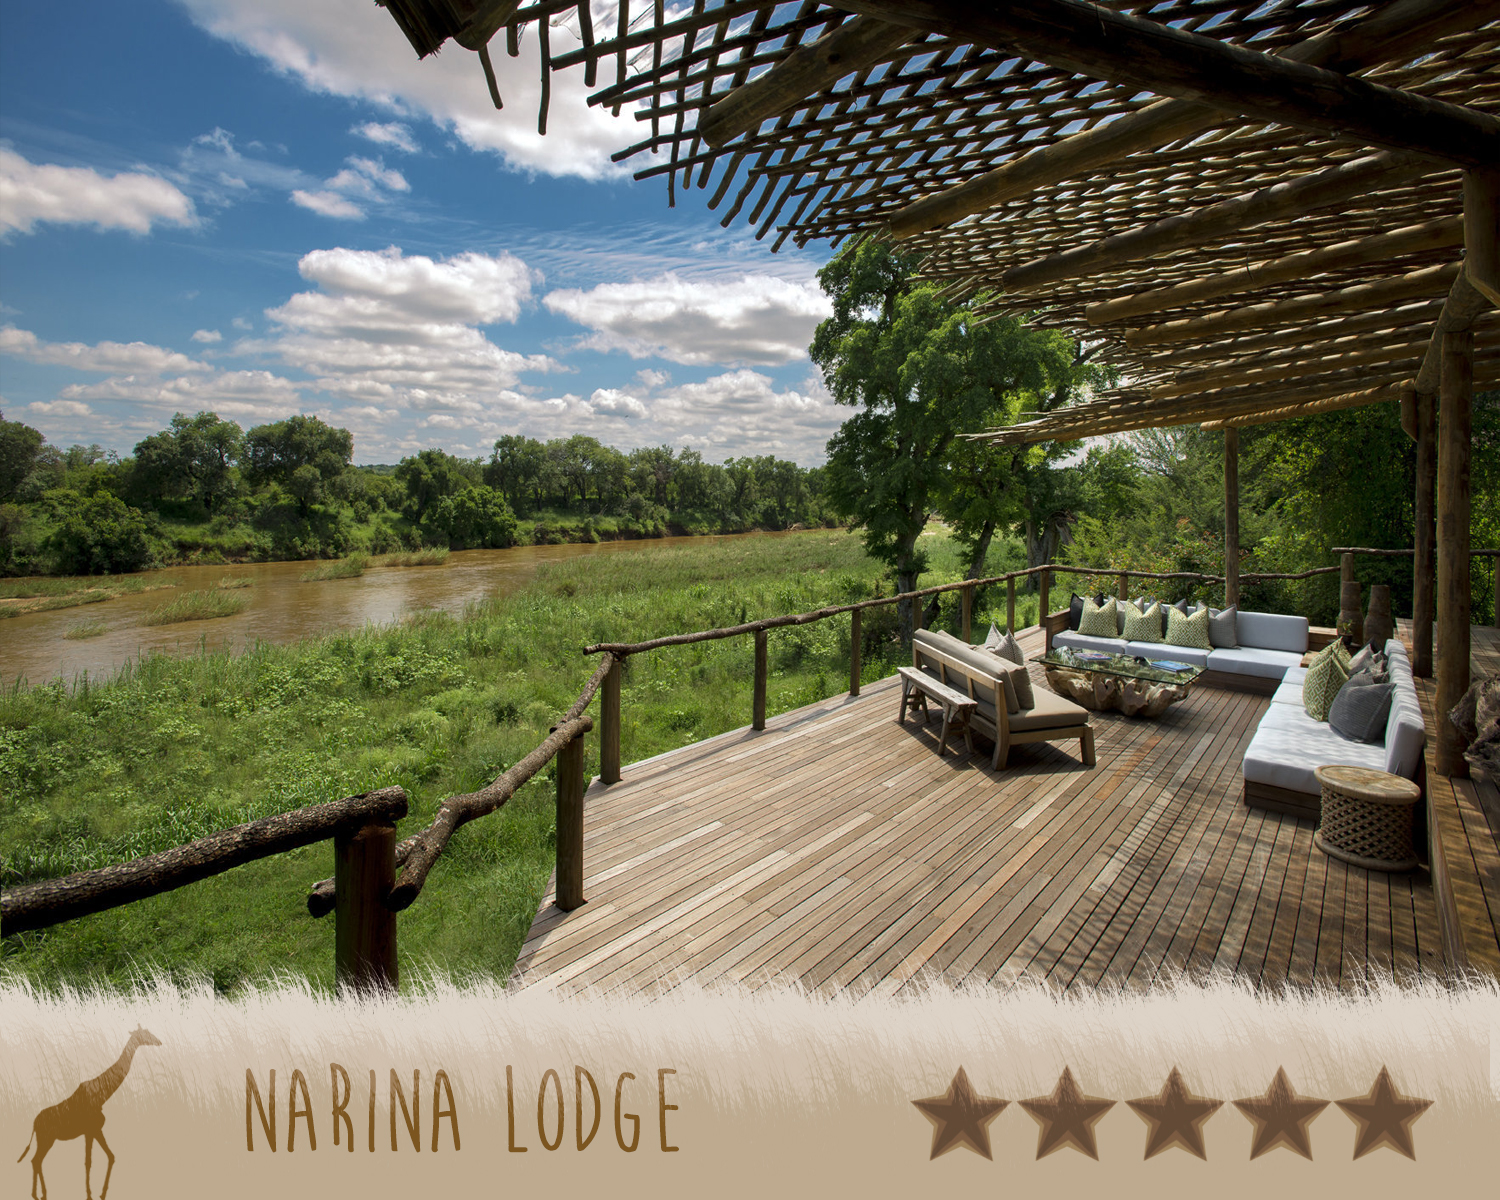 Narina Lodge Thumbnails